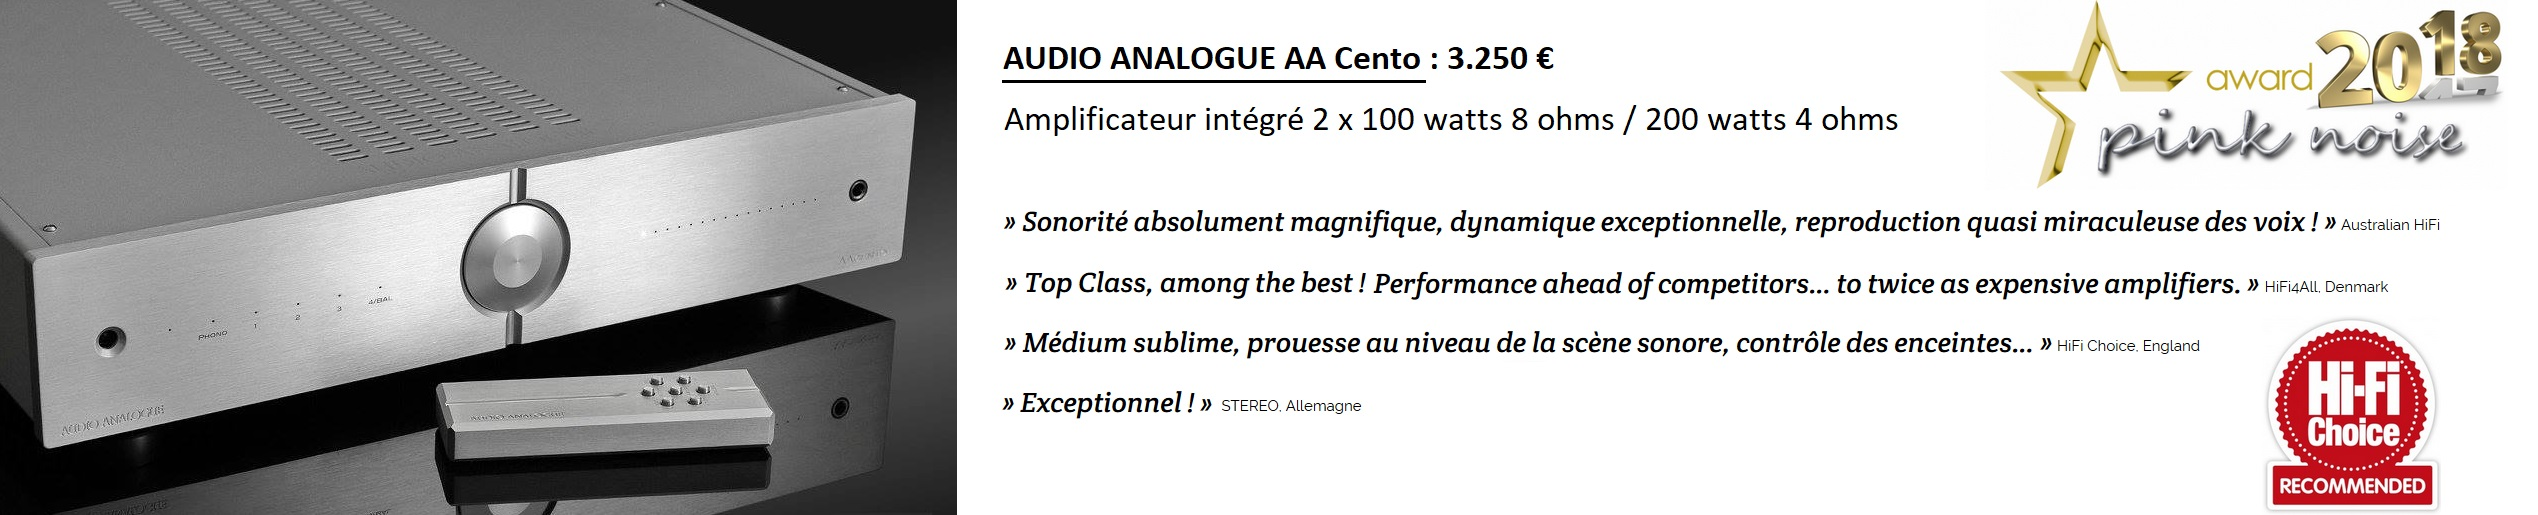 Audio AnalogueAACento